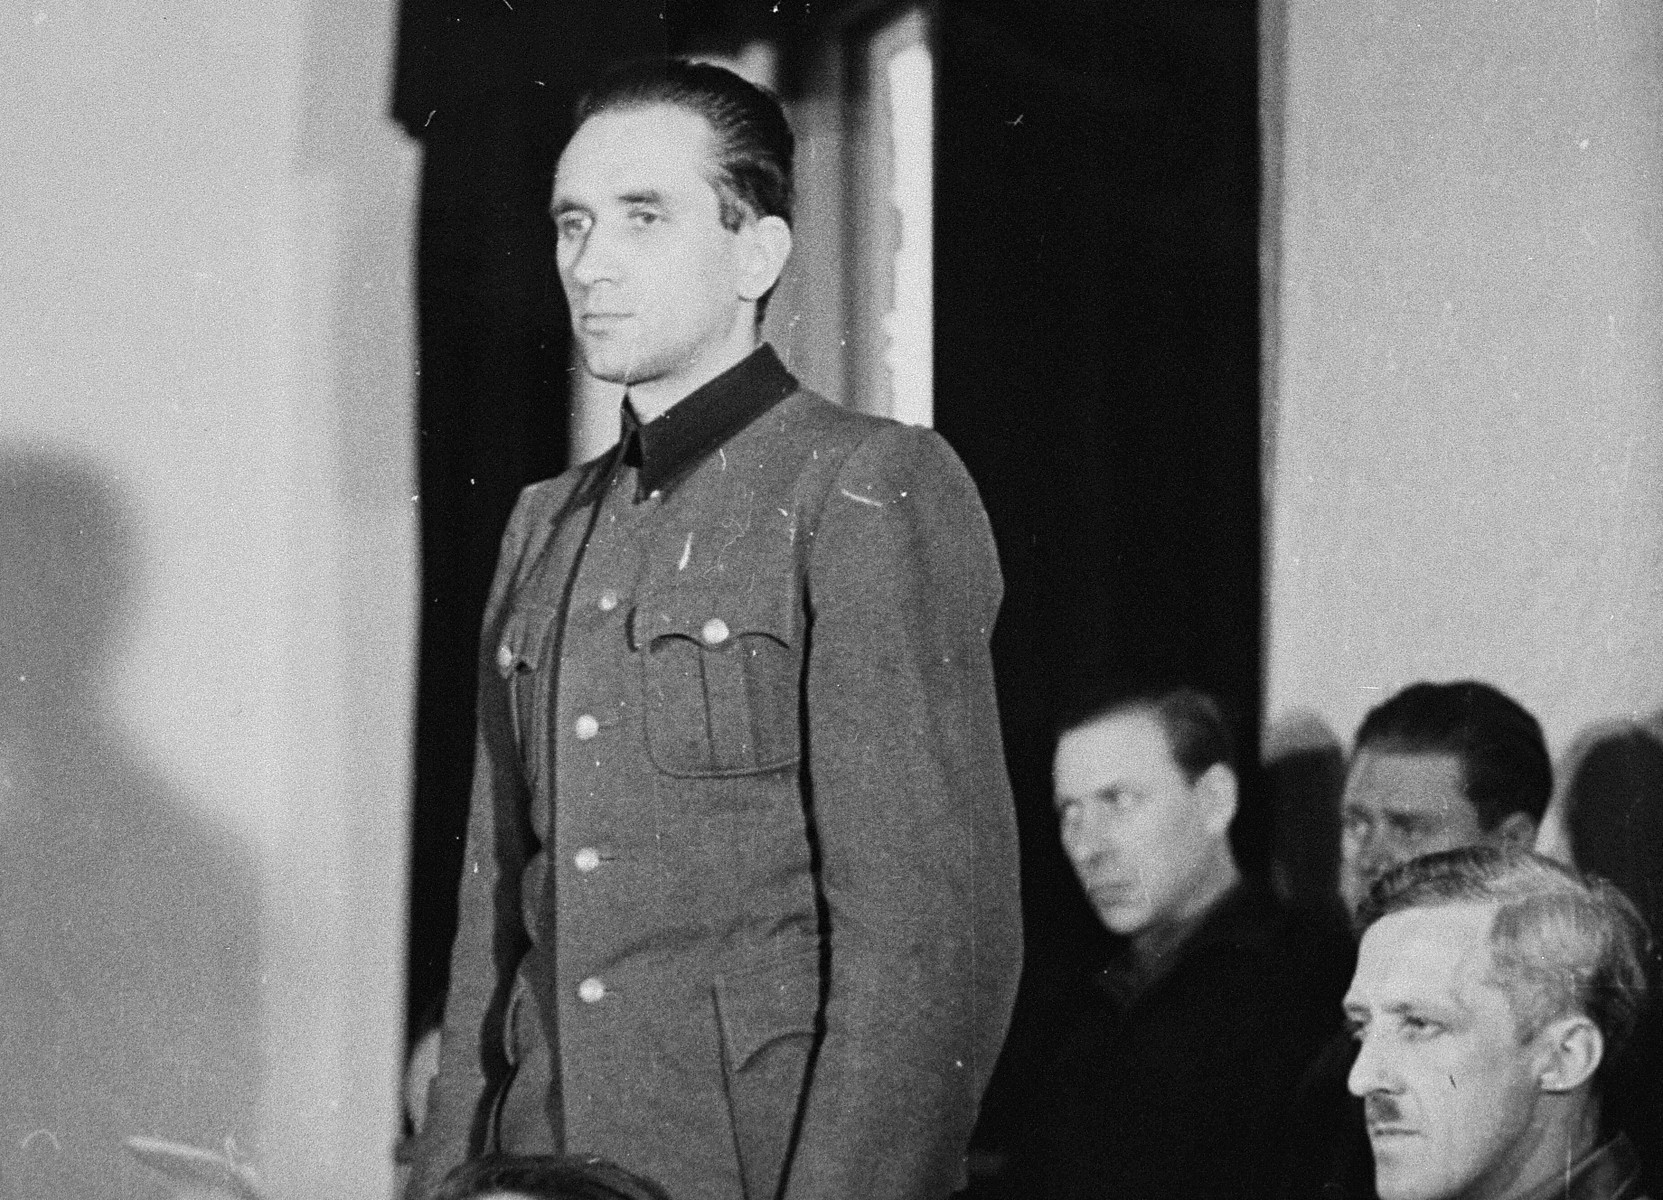 Dr. Friedrich Entress, defendant at the trial of 61 former camp personnel and prisoners from Mauthausen, stands in his place in the defendants' dock.